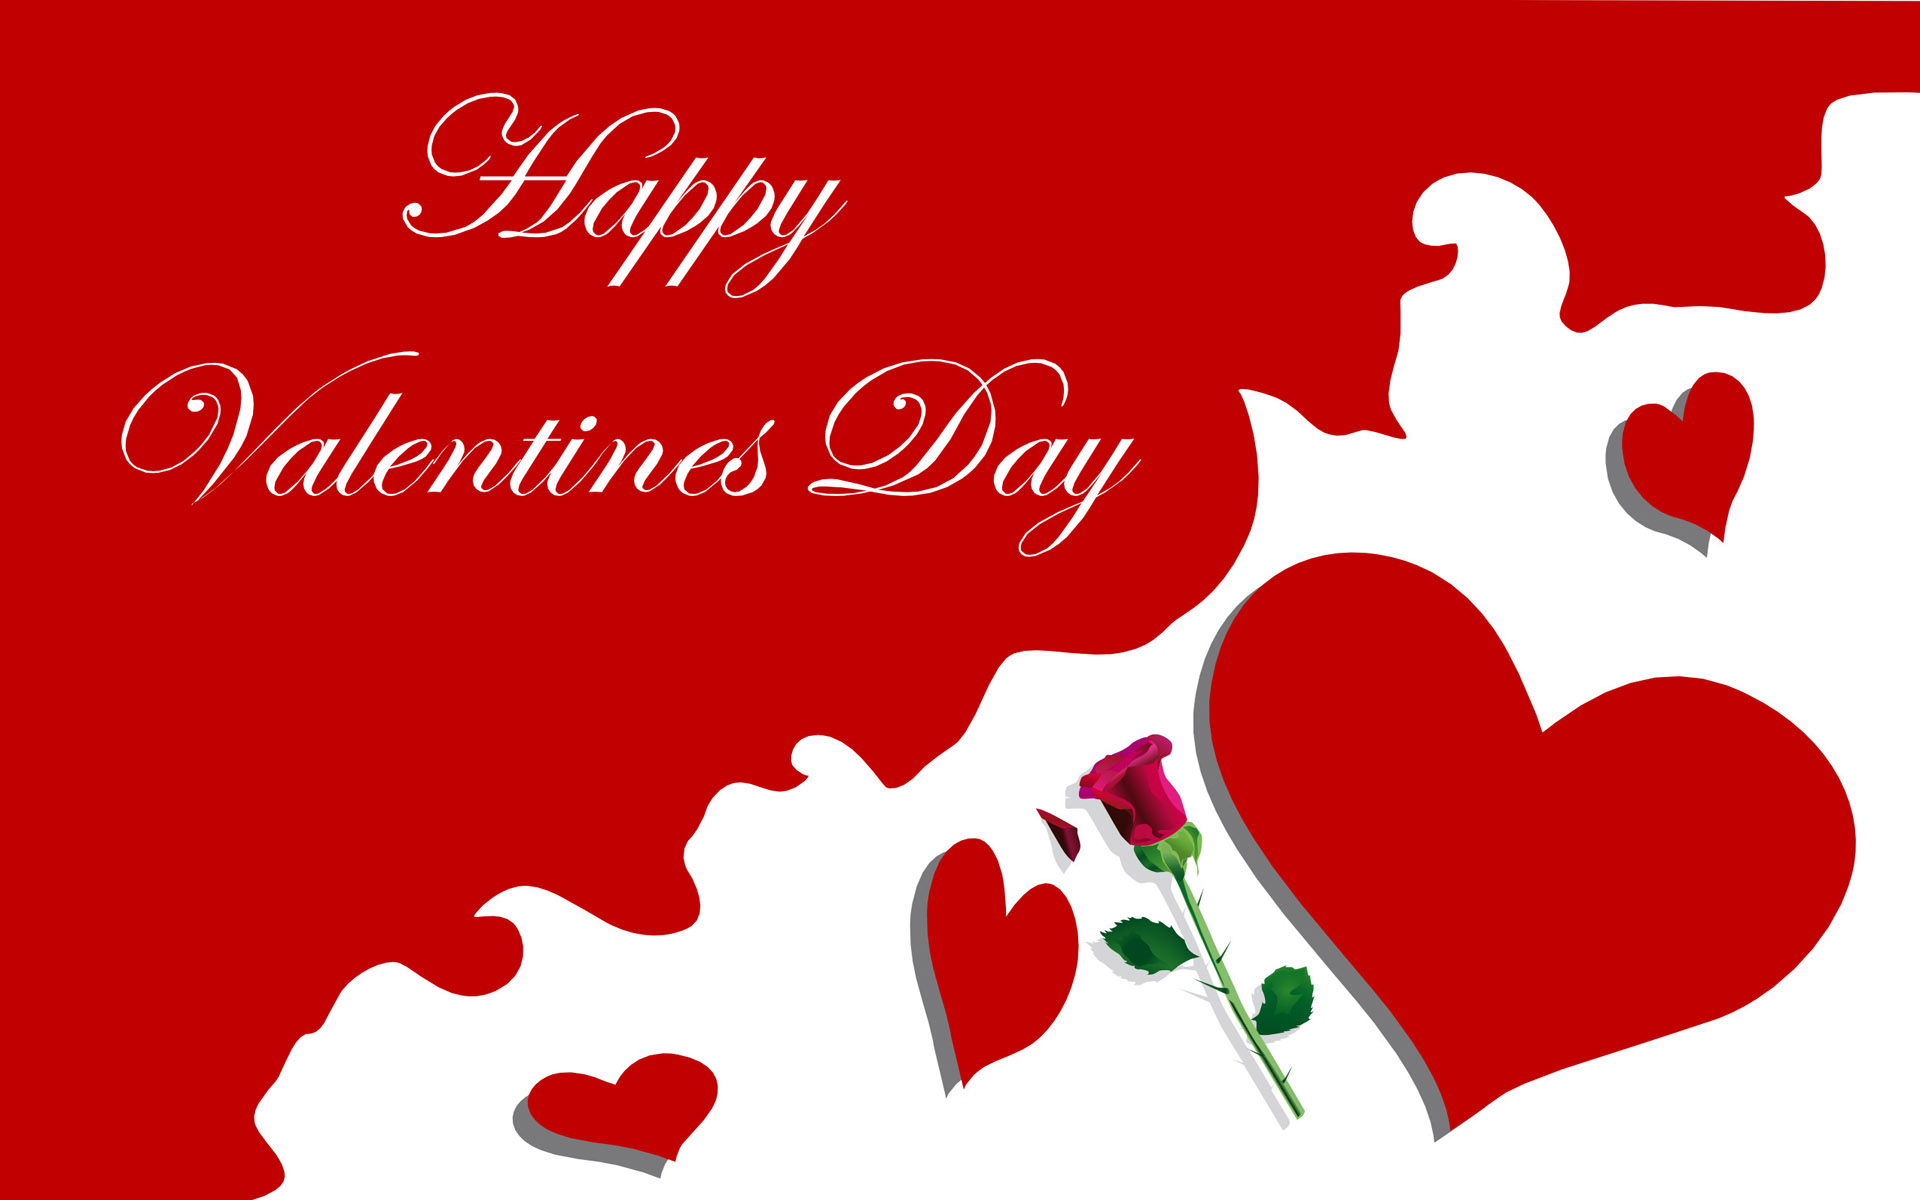 Valentines-Day-2015-Greeting-Cards-1